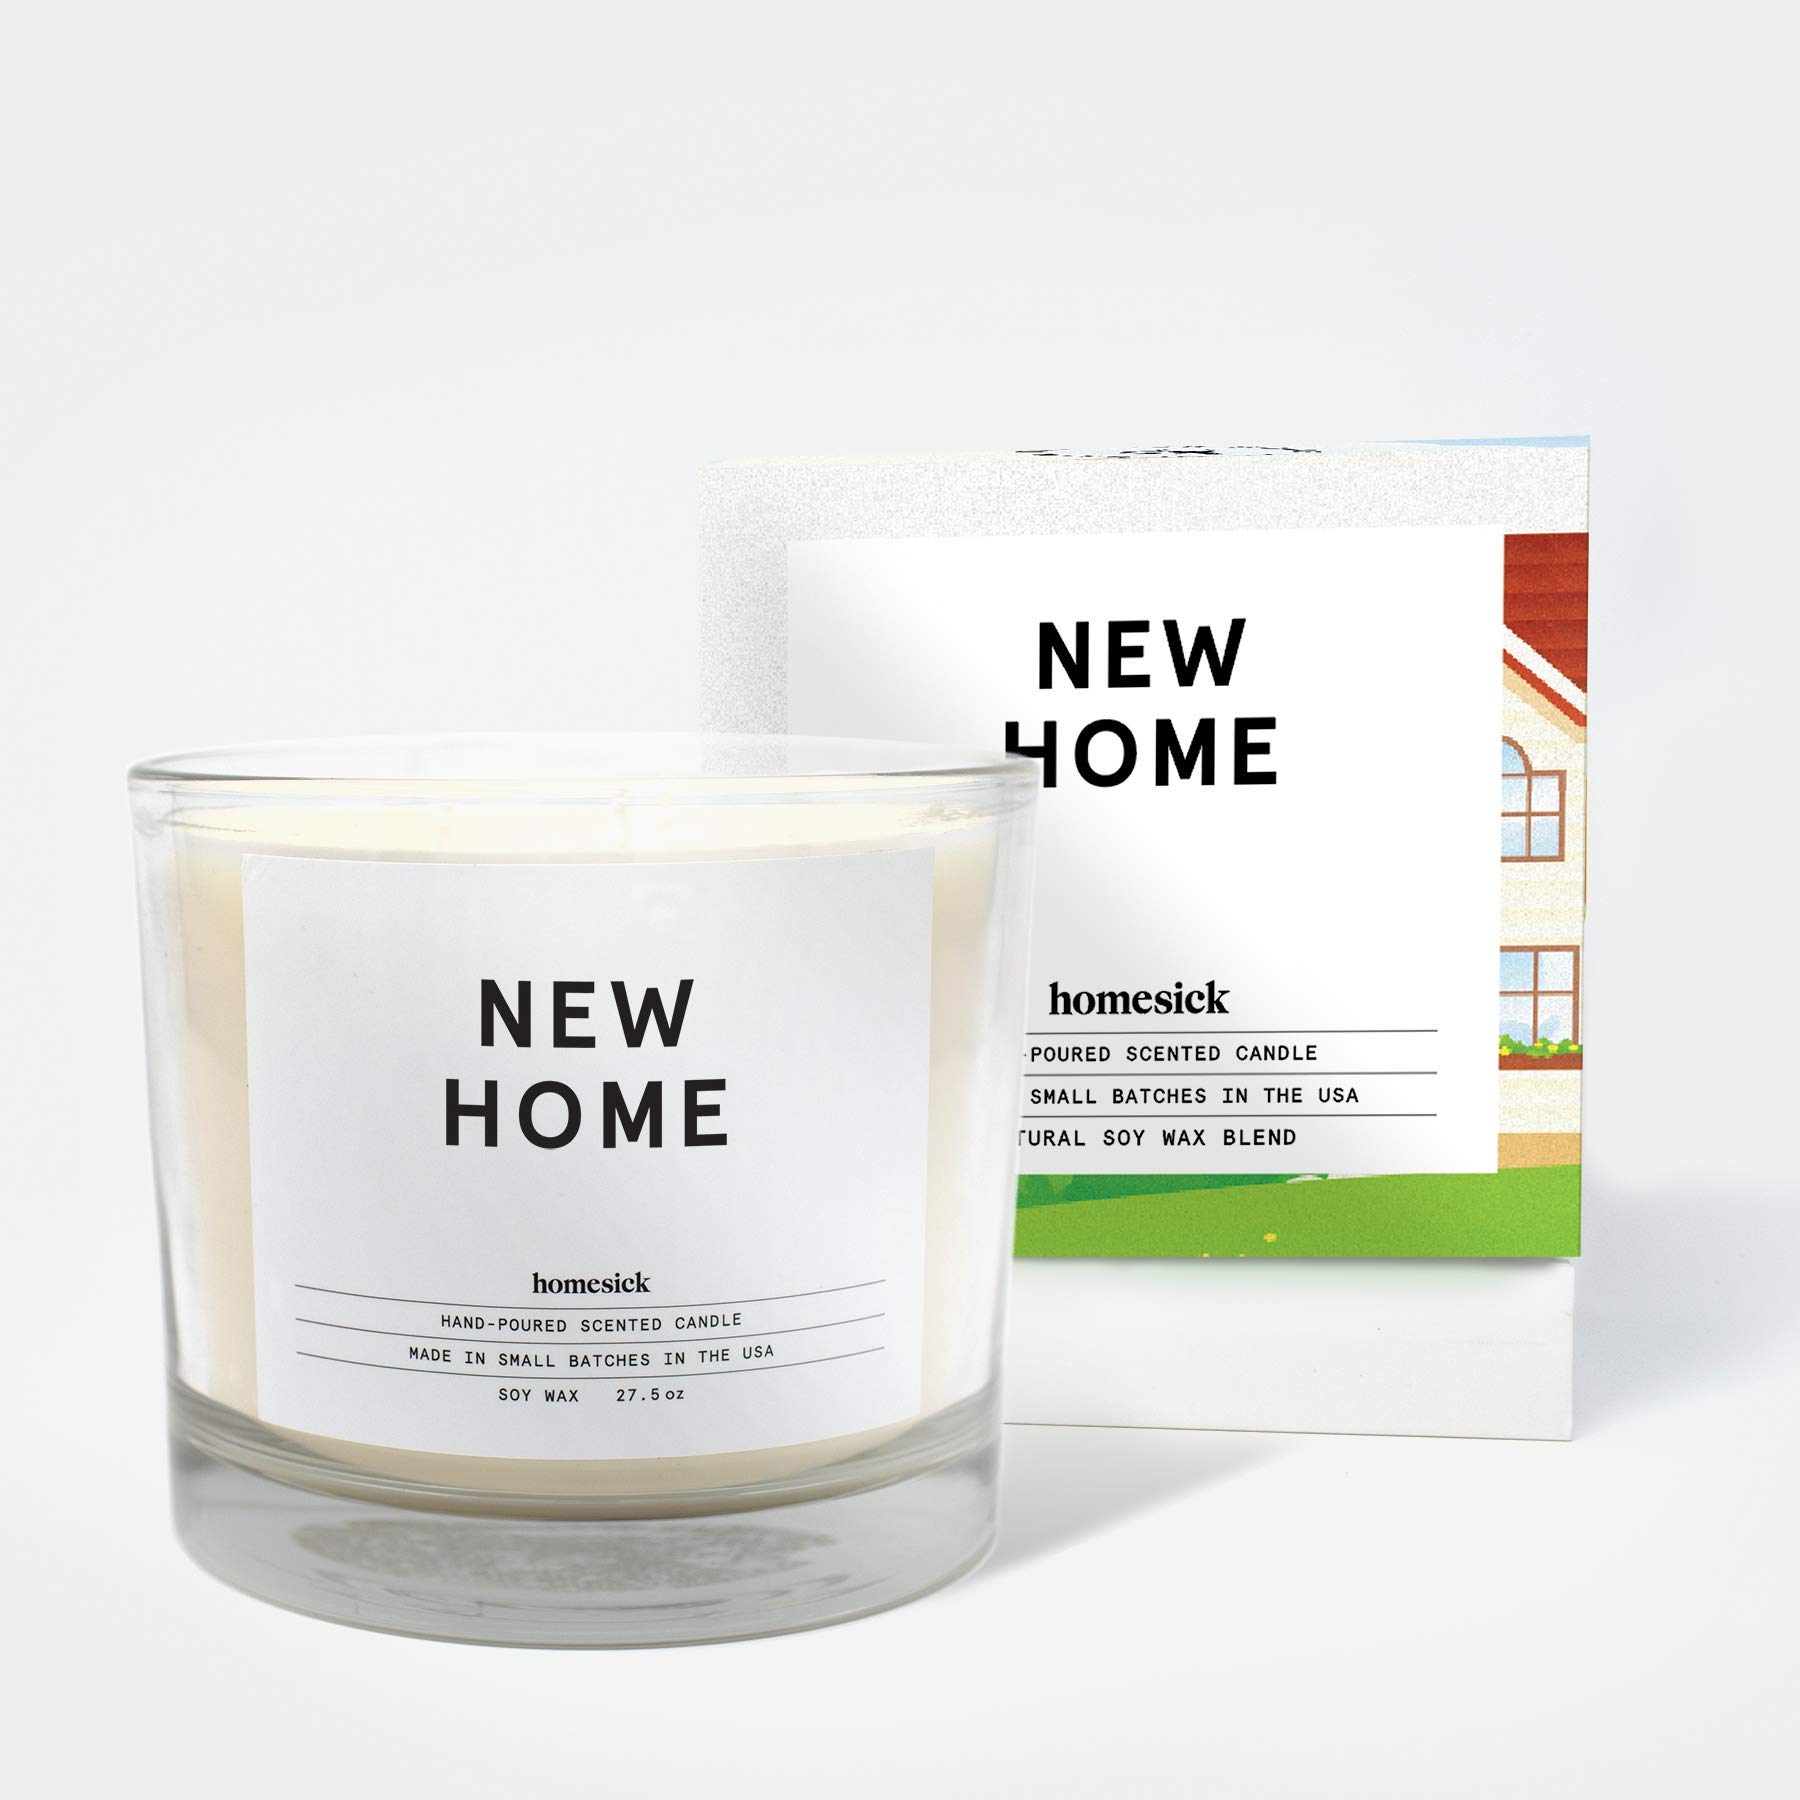 Homesick 3 Wick Scented Candle, Soy Wax - 27.5 oz (90 to 110 hrs Burn Time) New Home